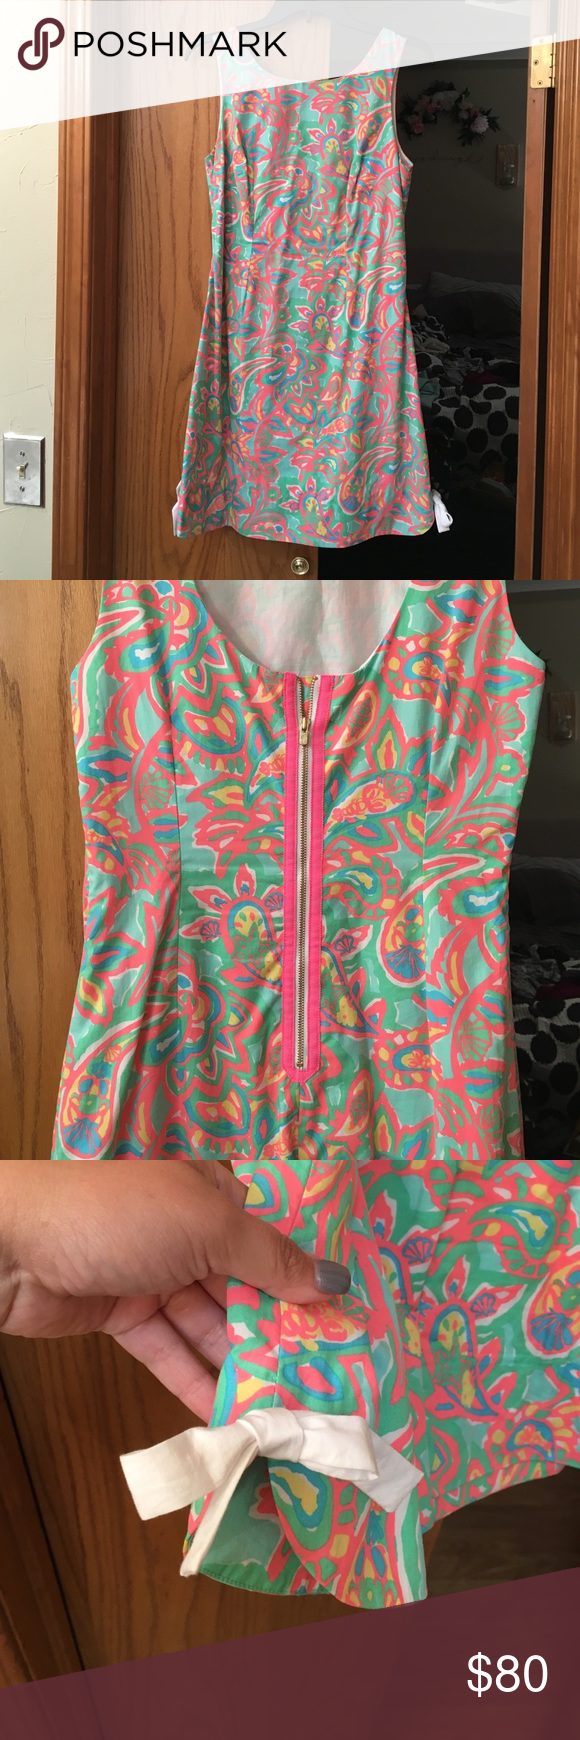 SALE🎉Lilly Pulitzer Make A Splash Adorable Lilly dress with bows on sides and exposed back zipper. Small black dots on the front (mascara?) barely noticeable and definitely cleanable. Worn once for Easter :) Priced low to get this dress to someone who will love it fast! Lilly Pulitzer Dresses Mini